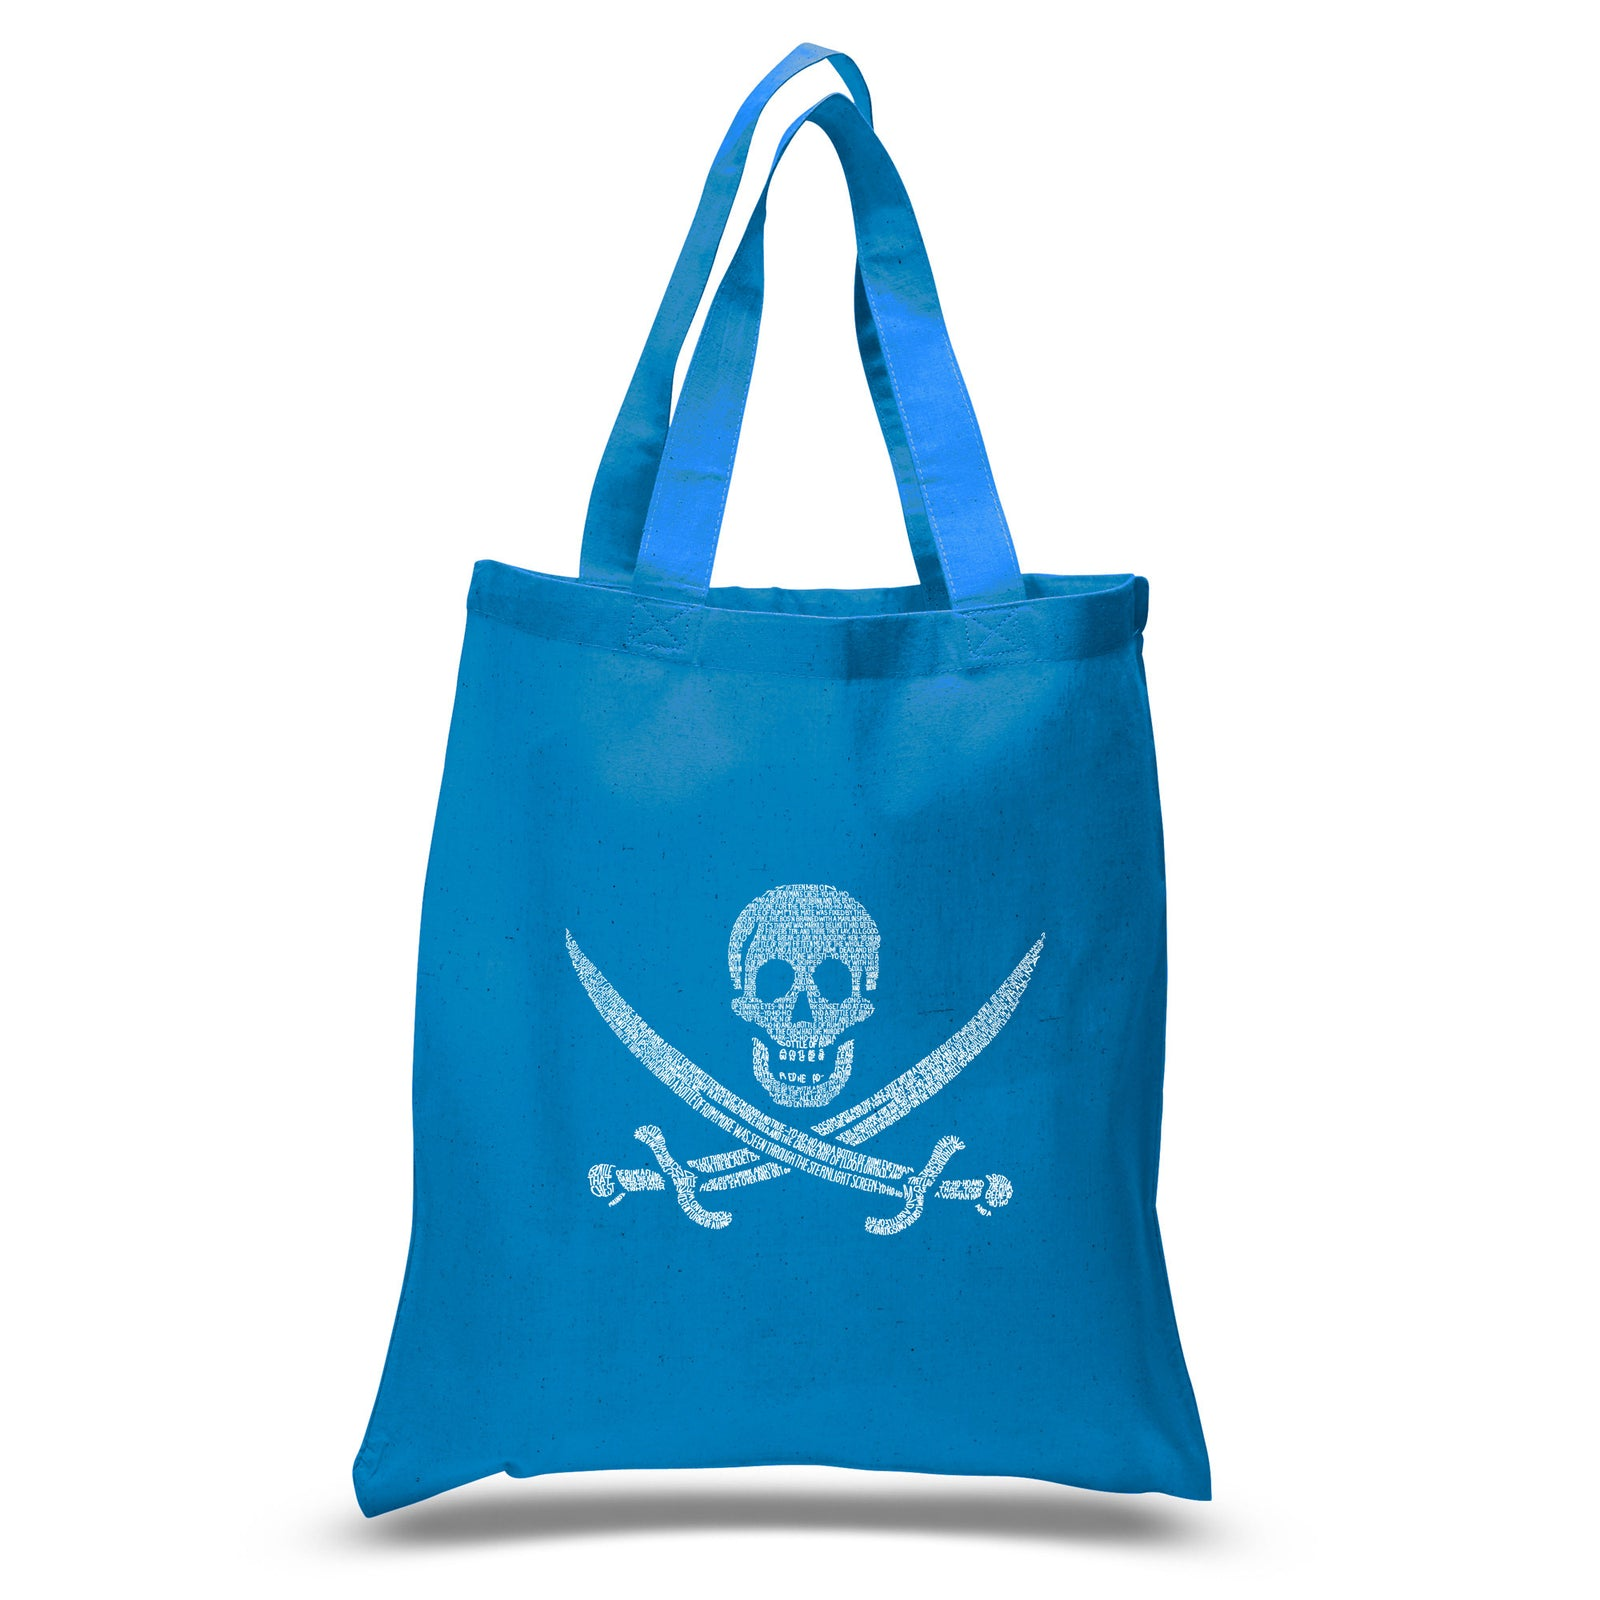 Small Tote Bag - LYRICS TO A LEGENDARY PIRATE SONG